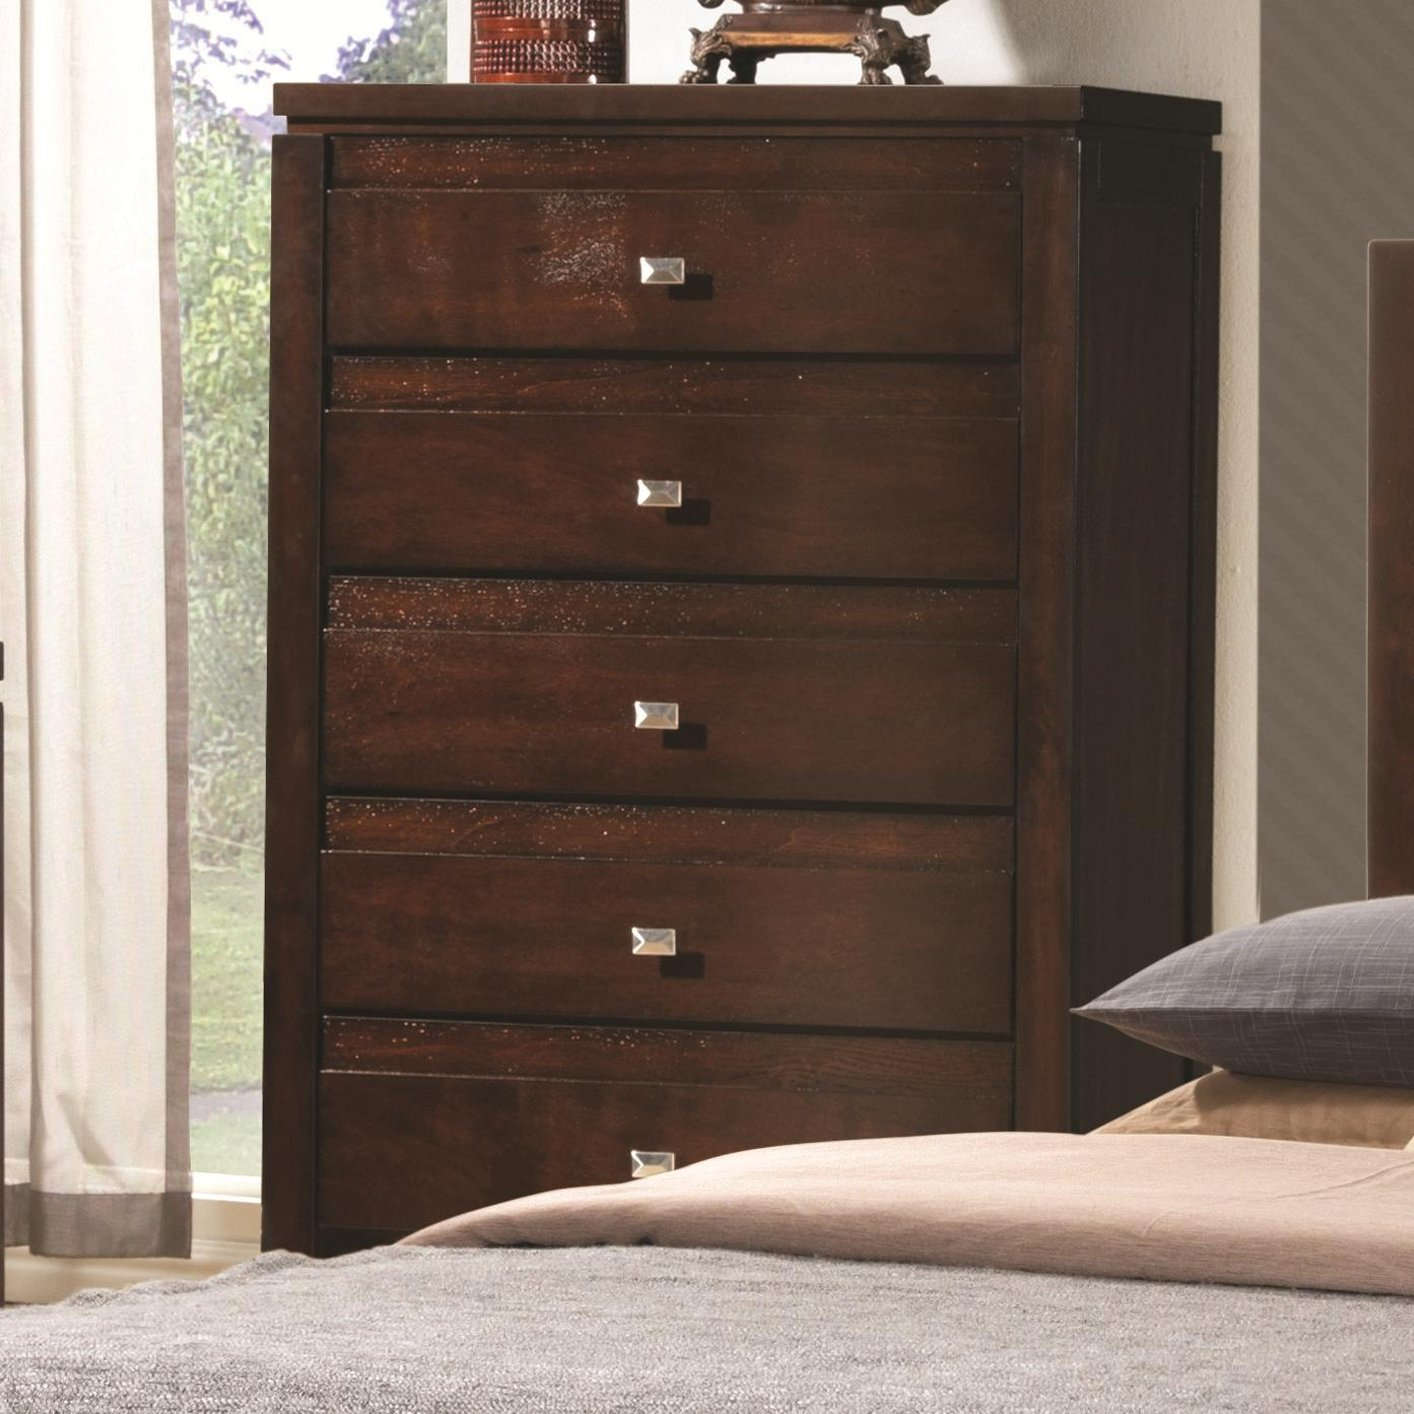 coaster 203495 brown wood chest of drawers steal a sofa furniture outlet los angeles ca. Black Bedroom Furniture Sets. Home Design Ideas